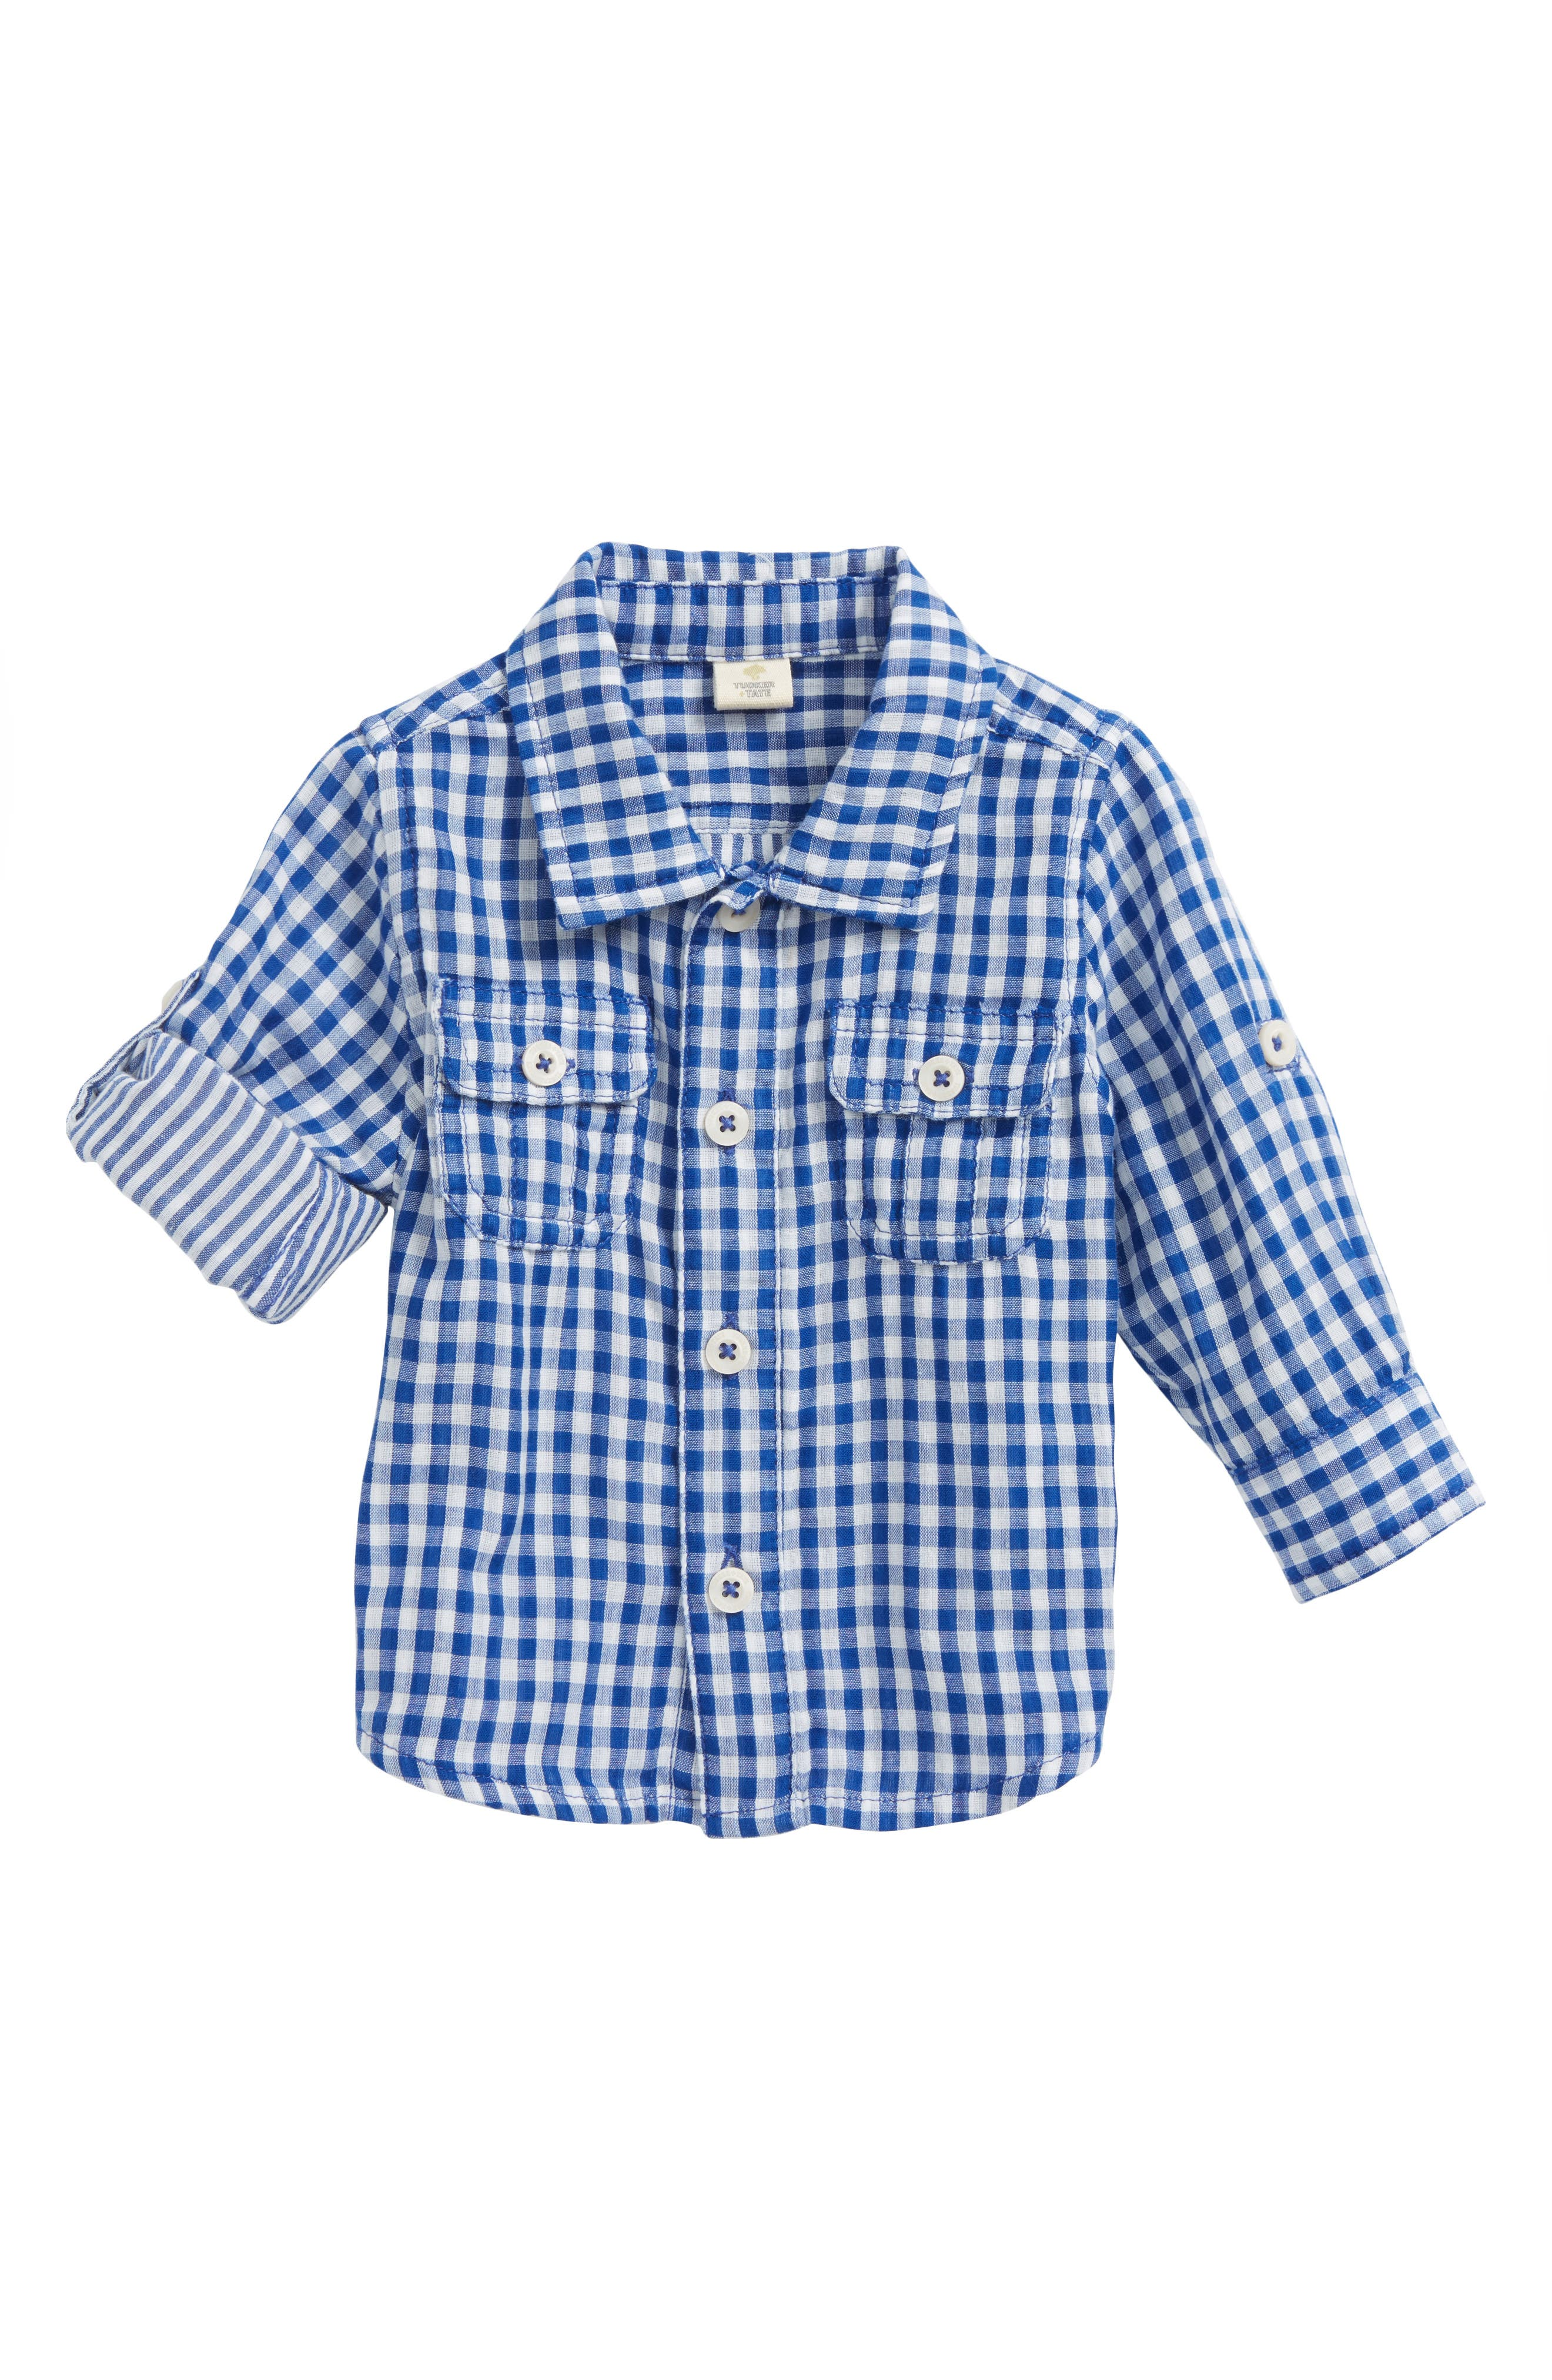 Double Woven Shirt,                         Main,                         color, 420